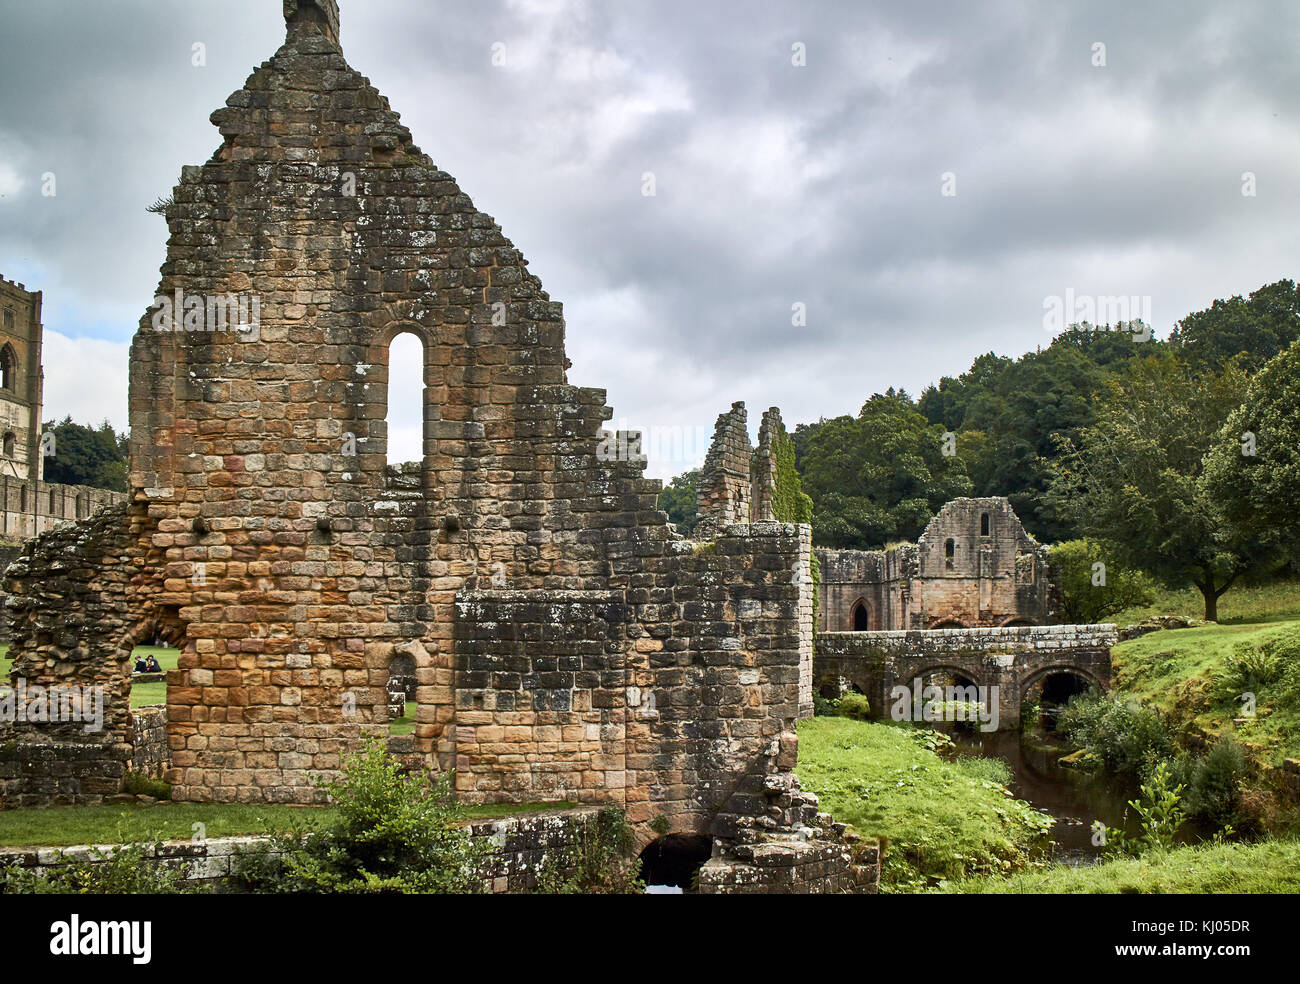 England, NorthYorkshire; the ruins of the 12th century Cistercian Abbey known as Fountains Abbey, one of the finest - Stock Image